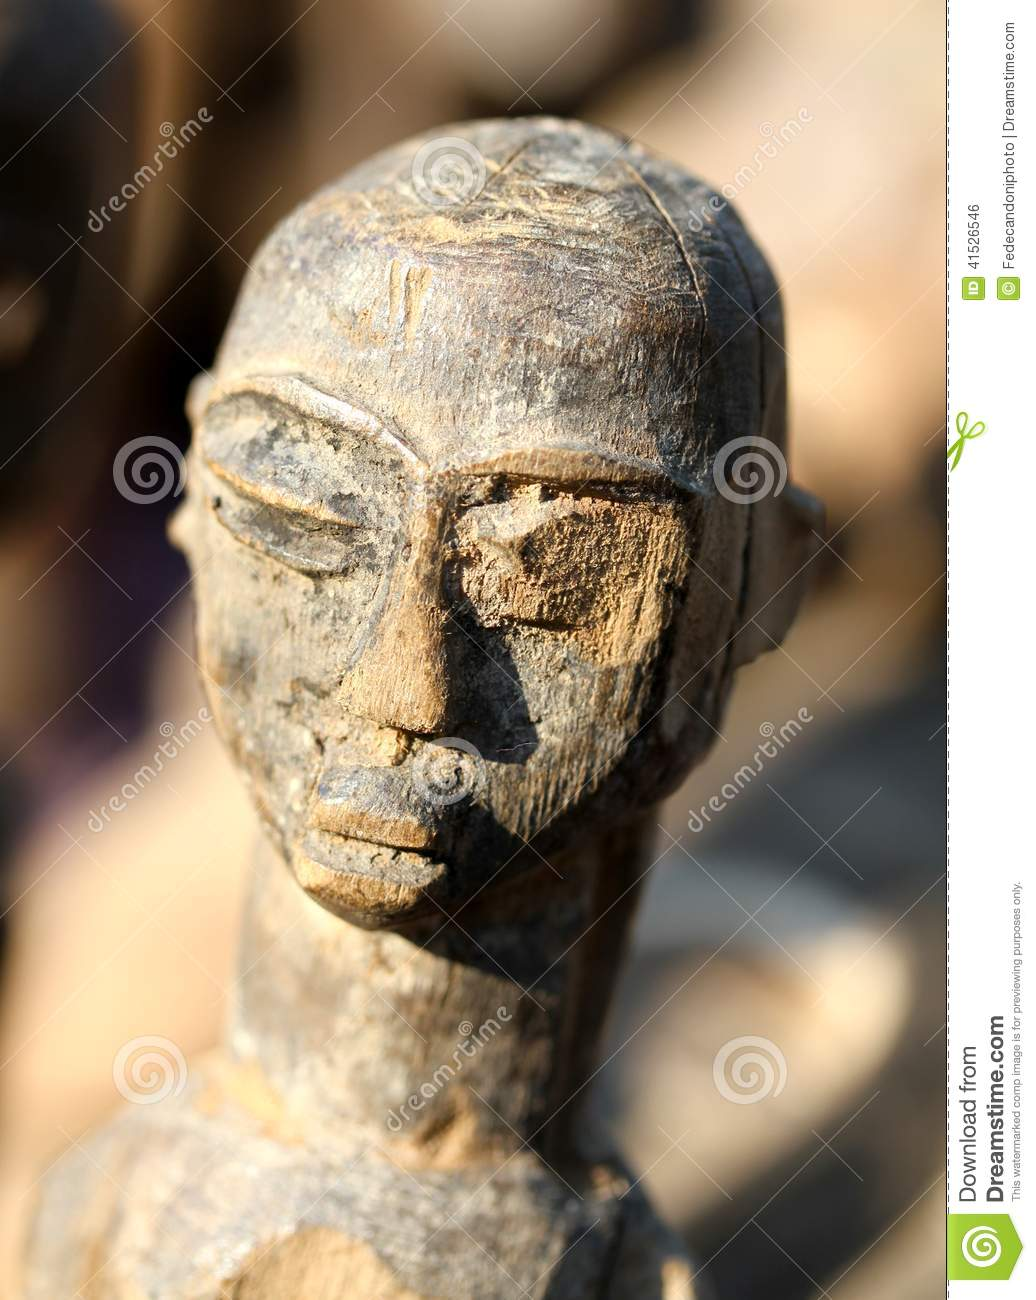 Wooden African mask that represents a woman s face made by hand